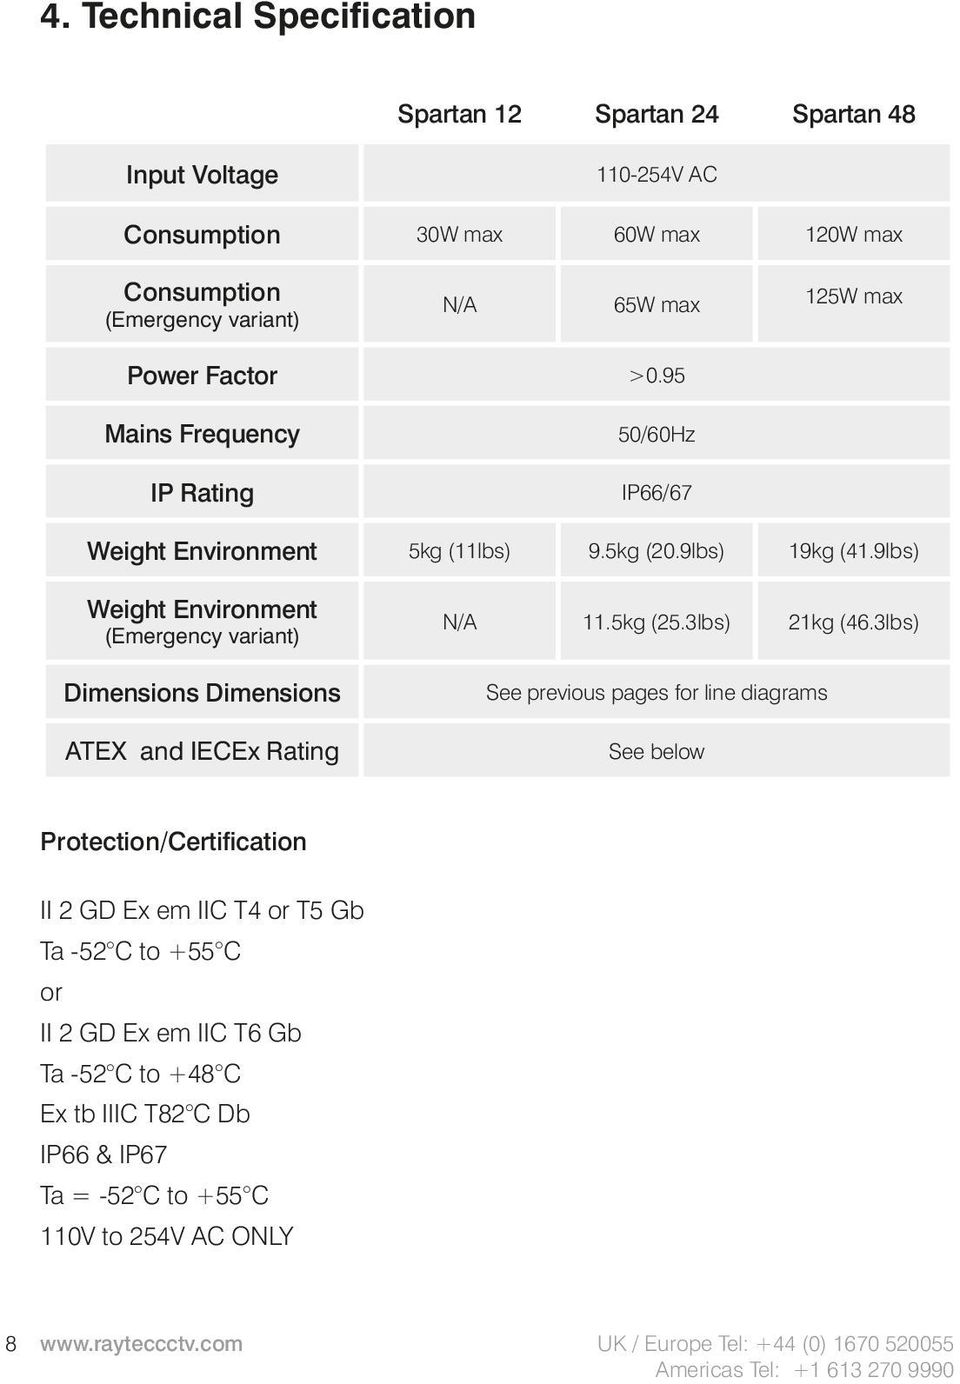 9lbs) Weight Environment (Emergency variant) Dimensions Dimensions ATEX and IECEx Rating N/A 11.5kg (25.3lbs) 21kg (46.